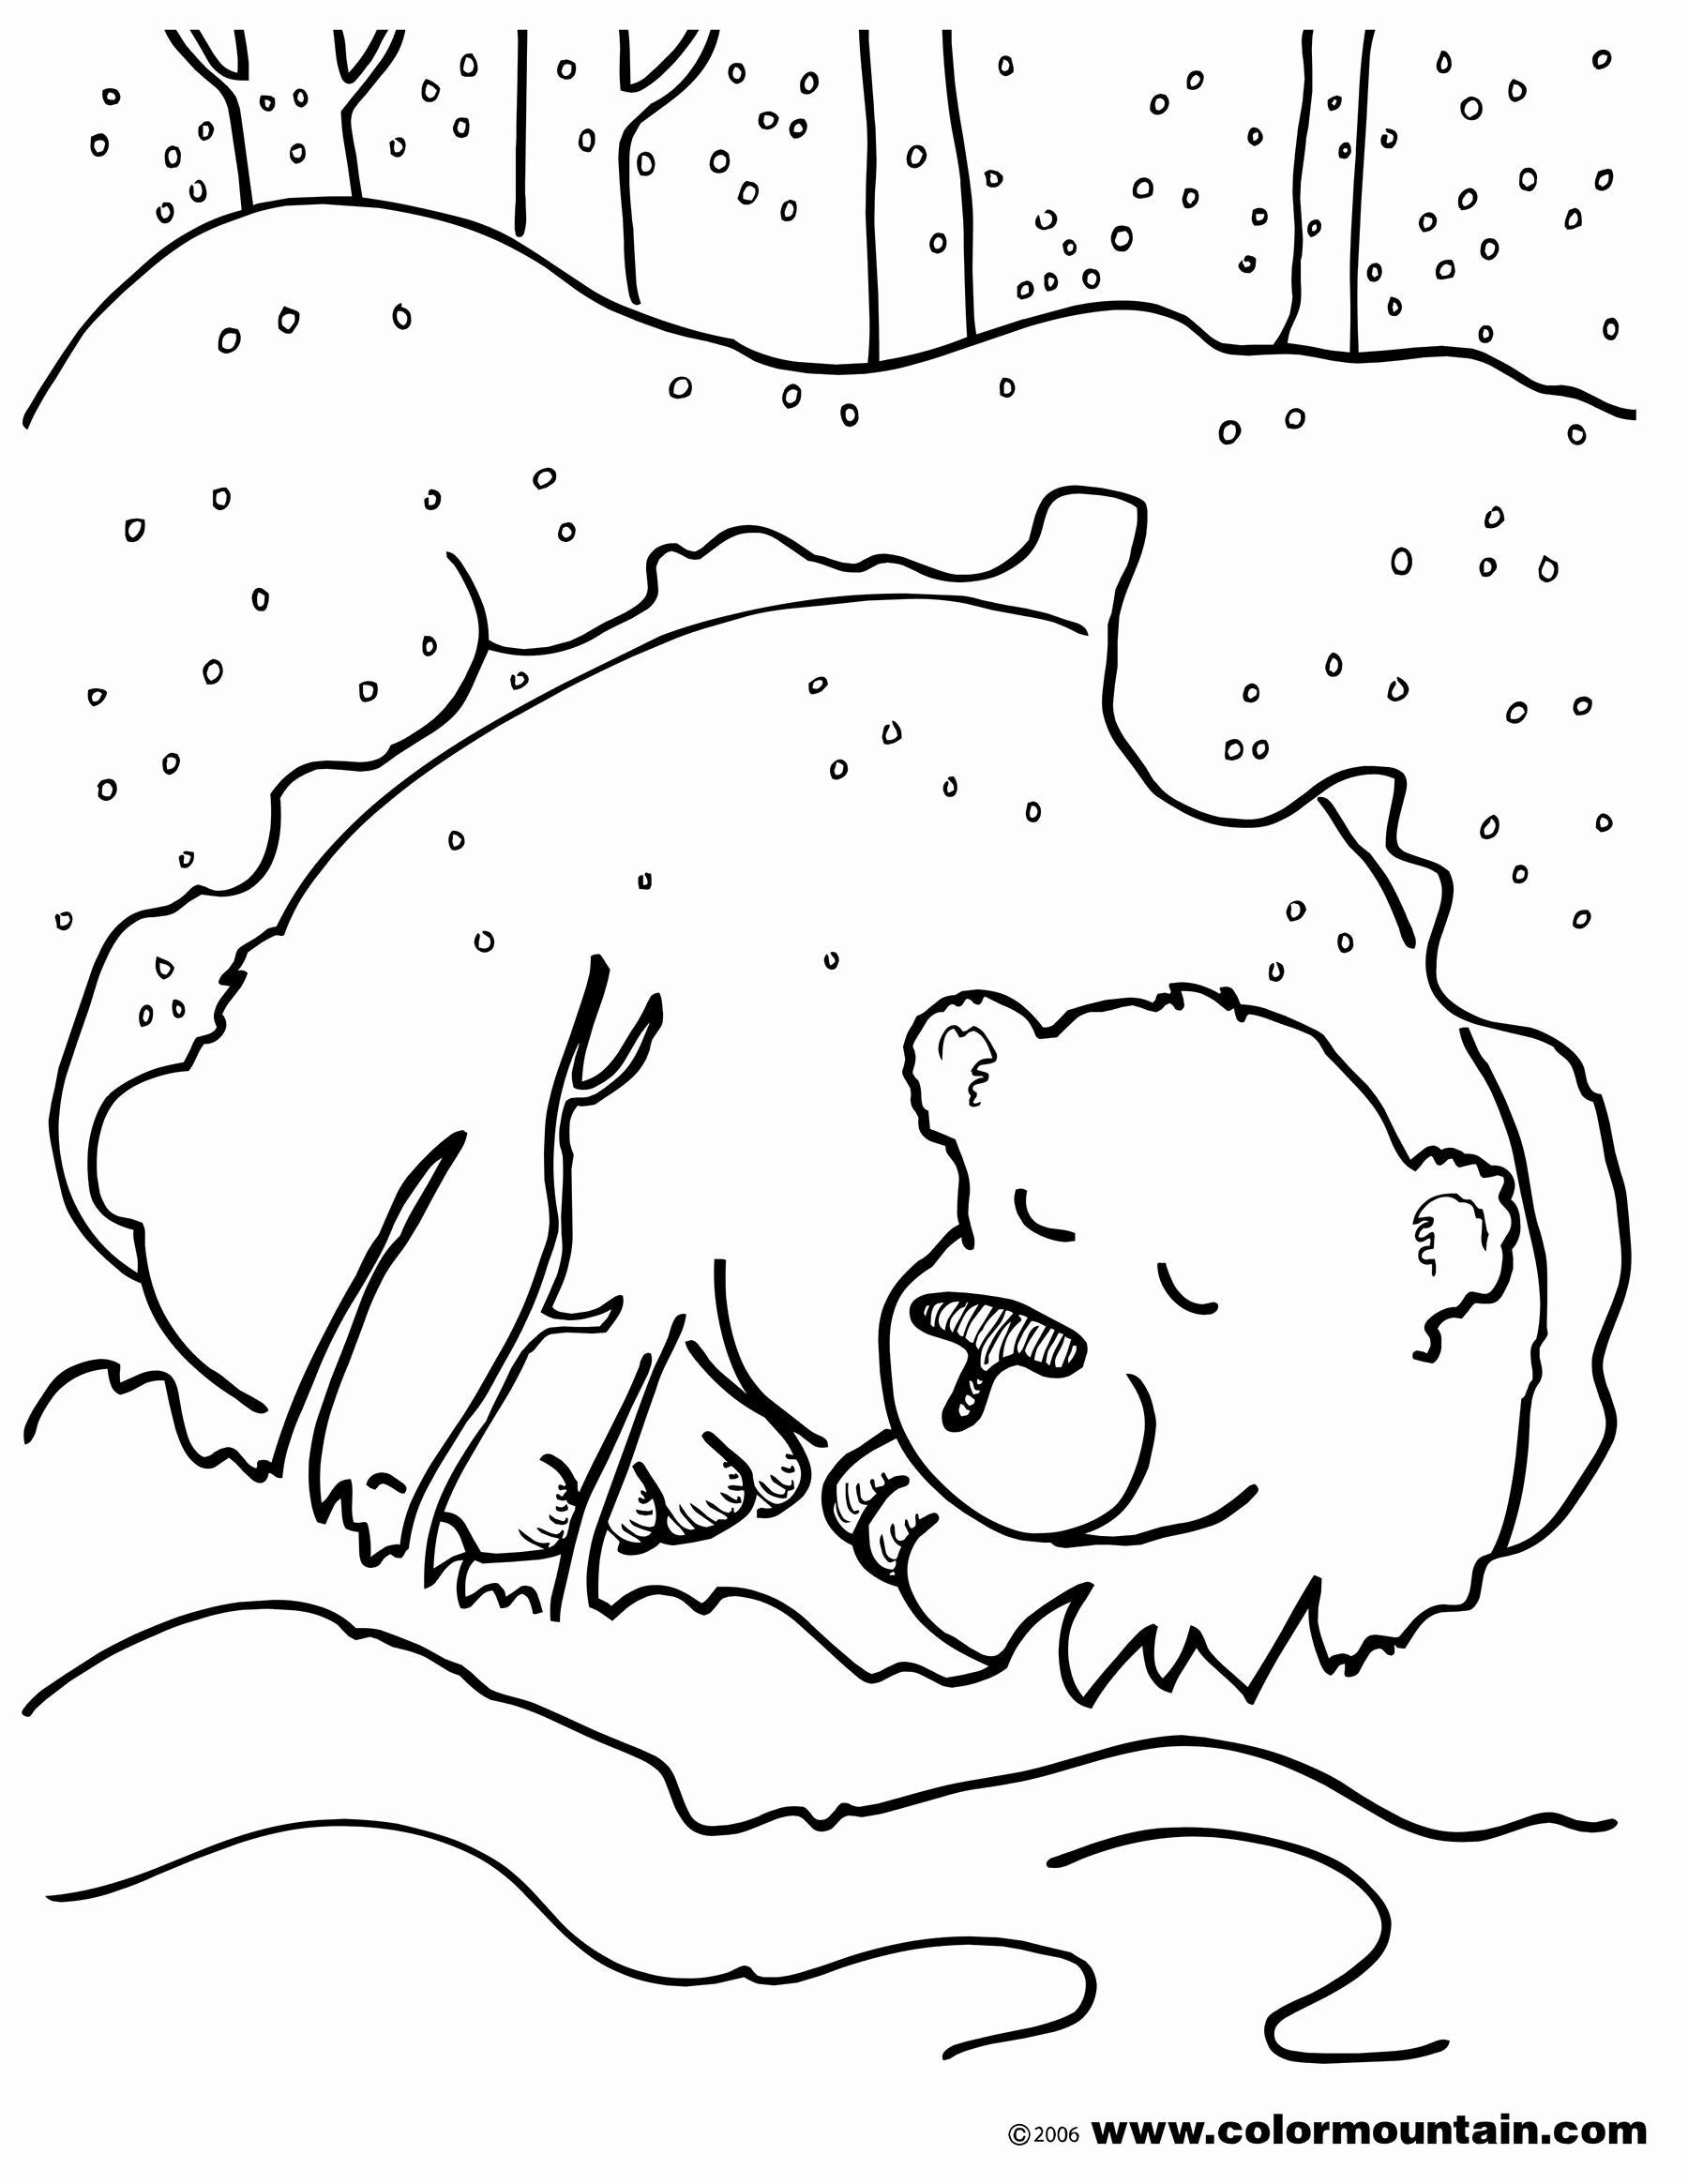 Coloring Sheets Winter Animals Concept